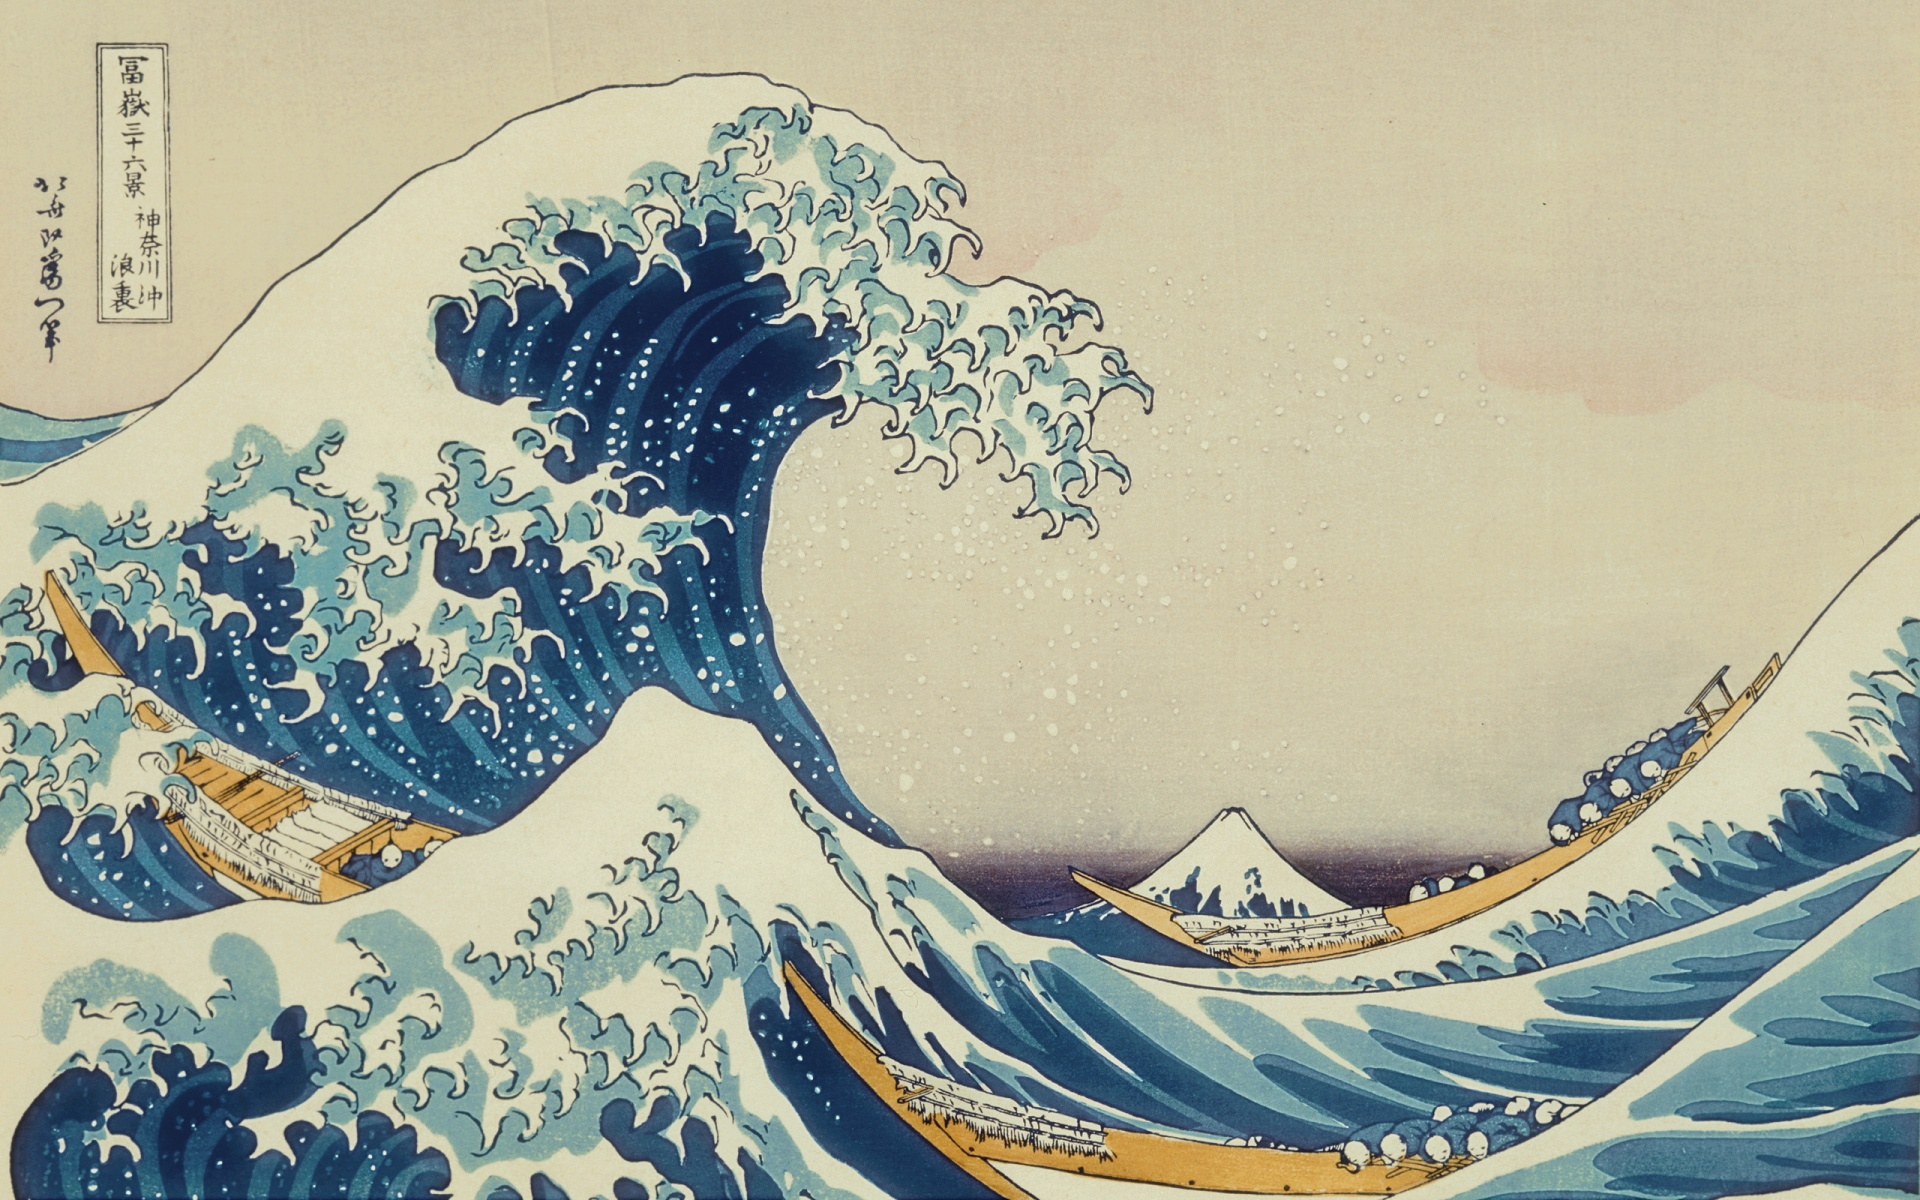 Japanese Waves Wallpaper, Art Waves Wallpaper